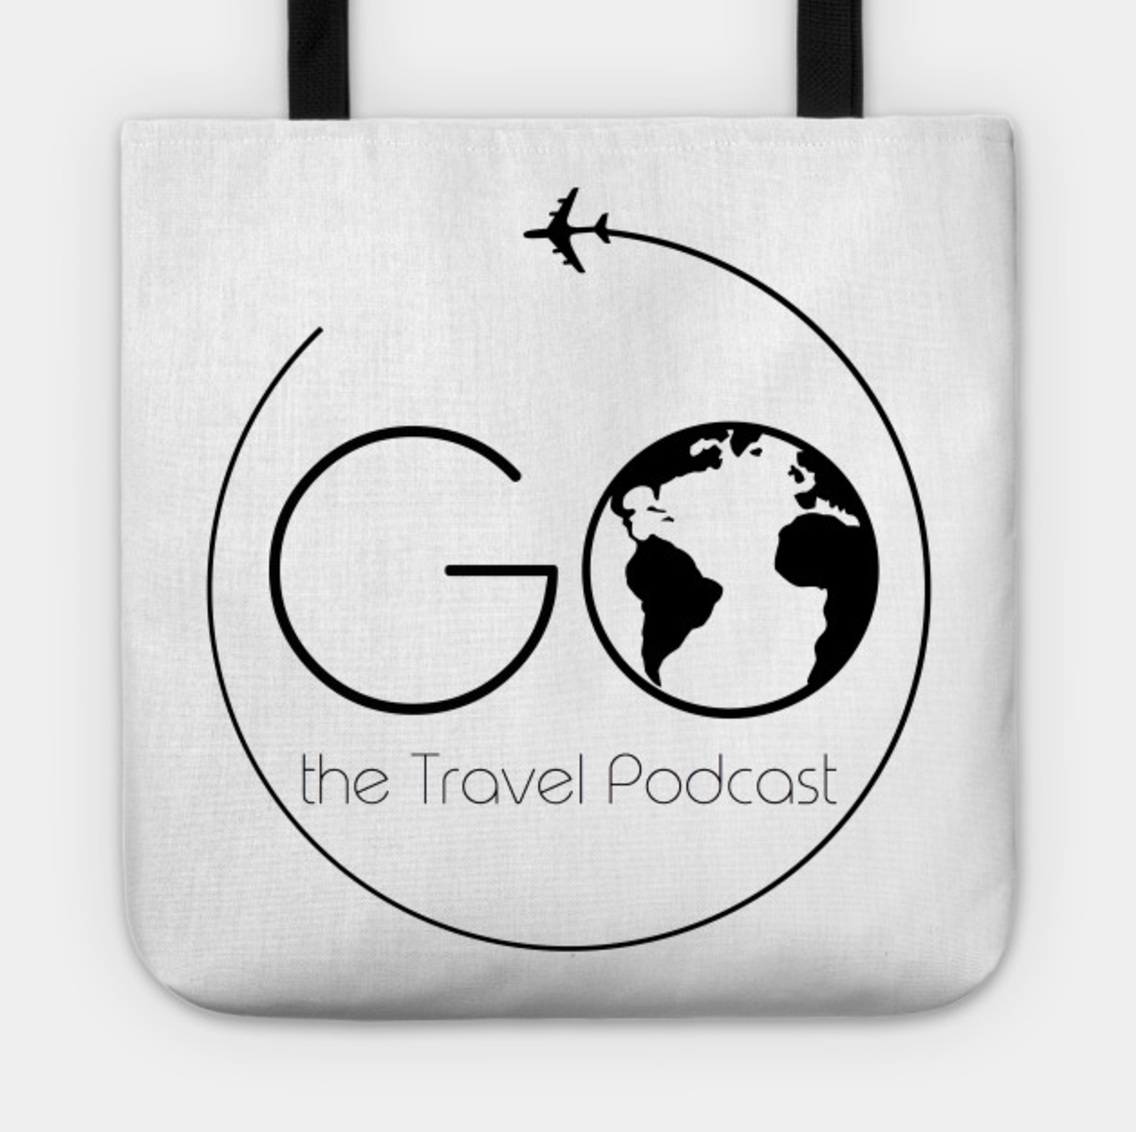 Go the Travel Podcast Tote Bag